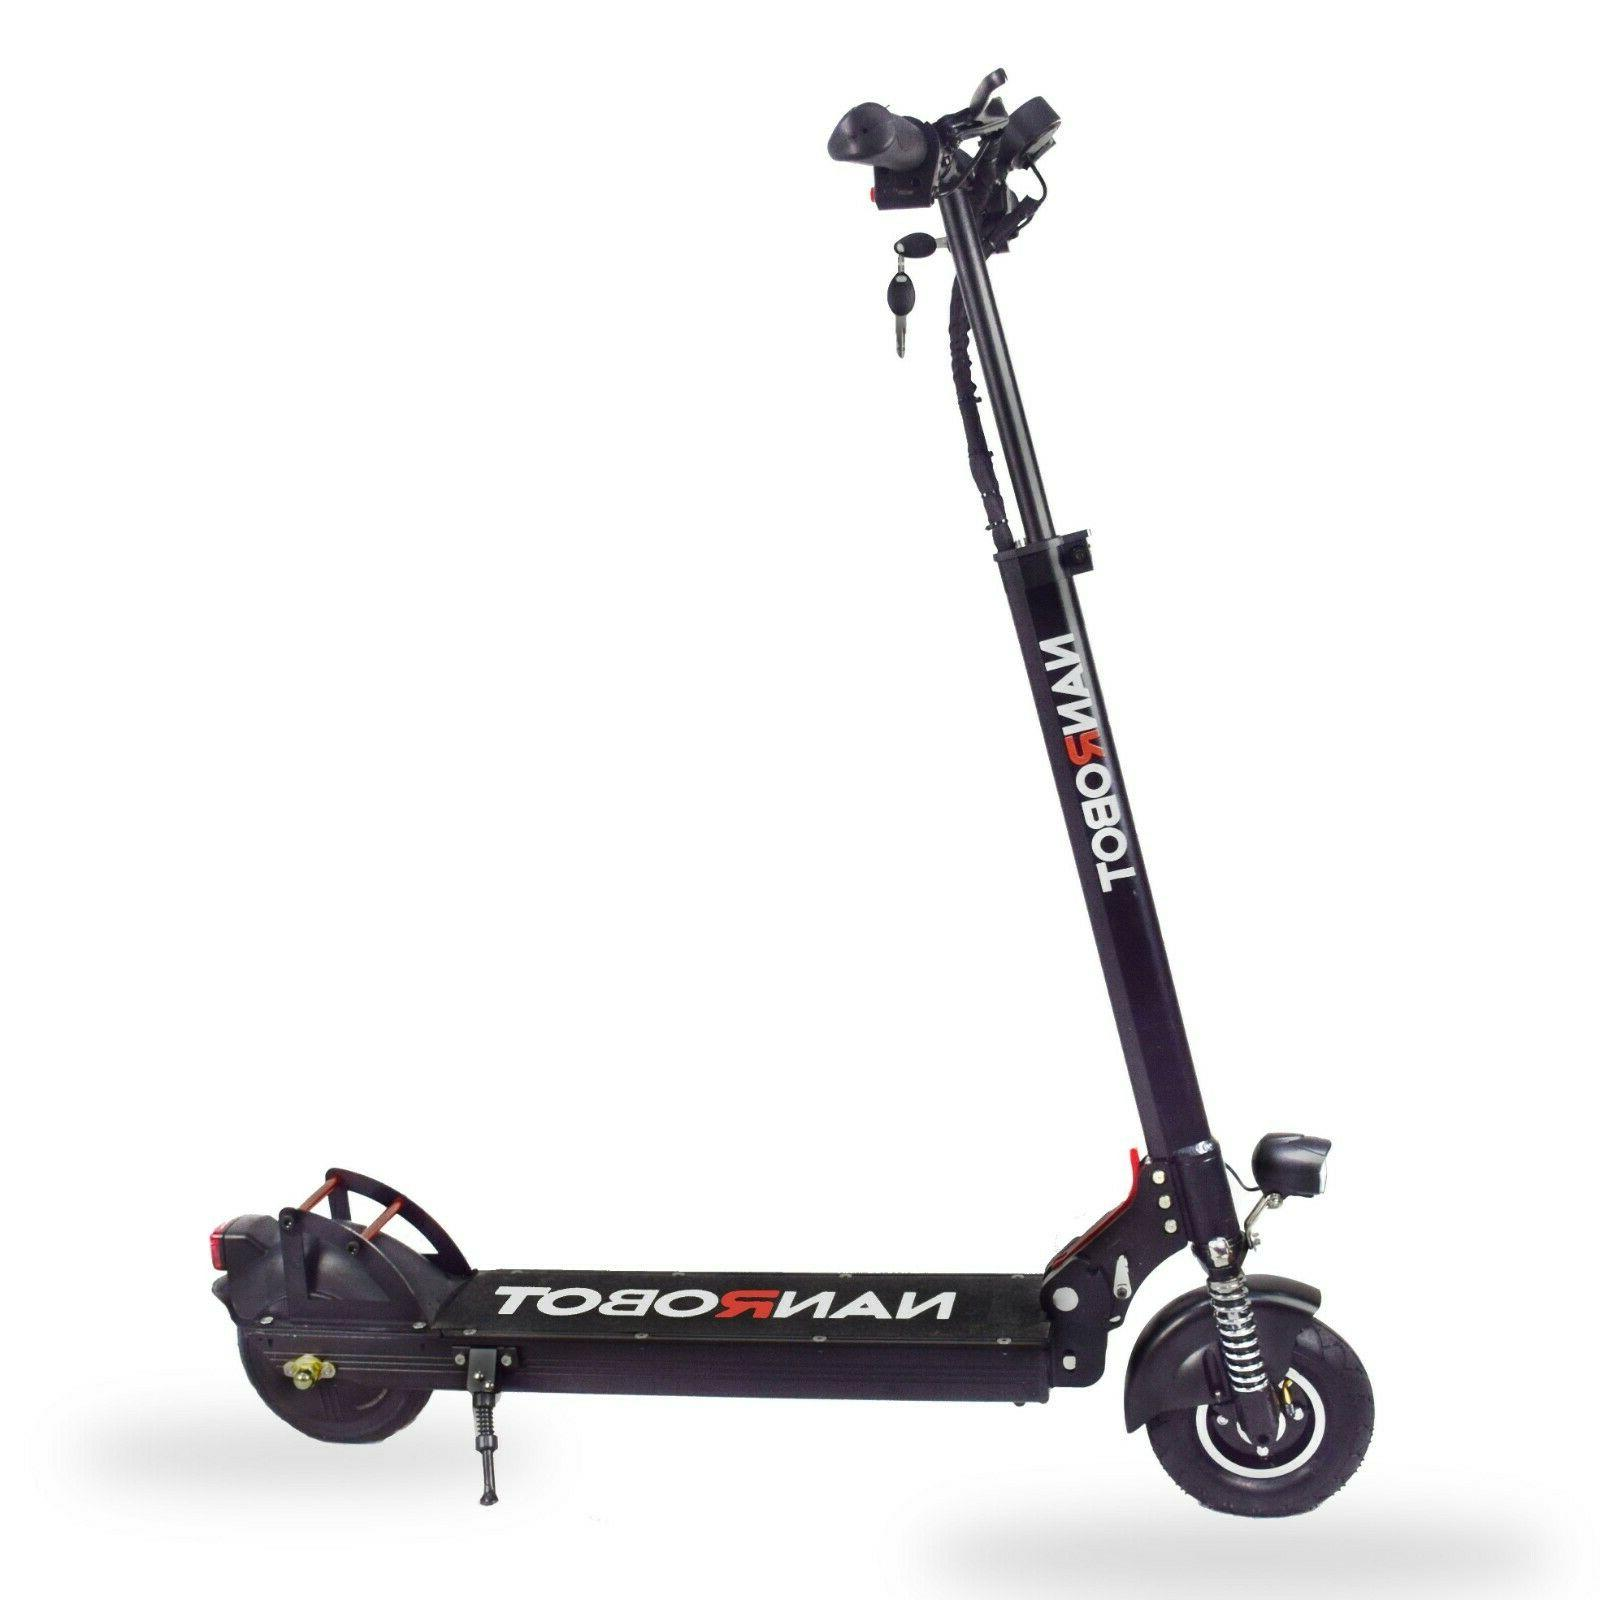 x4 2 0 electric scooter 500w motor